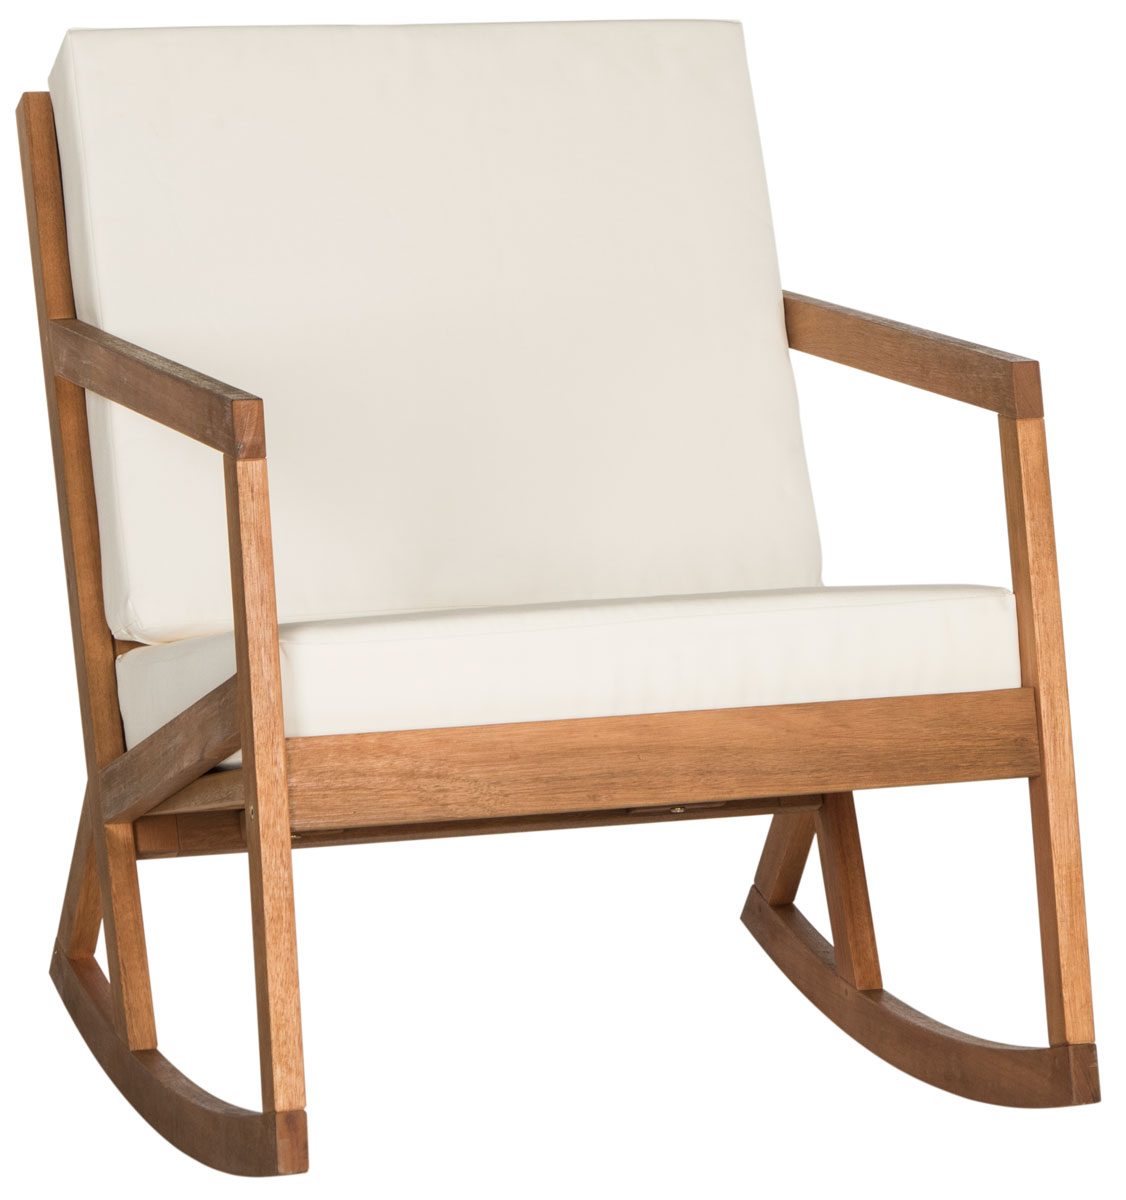 Pat7013a Outdoor Rocking Chairs Rocking Chairs Furniture By Safavieh